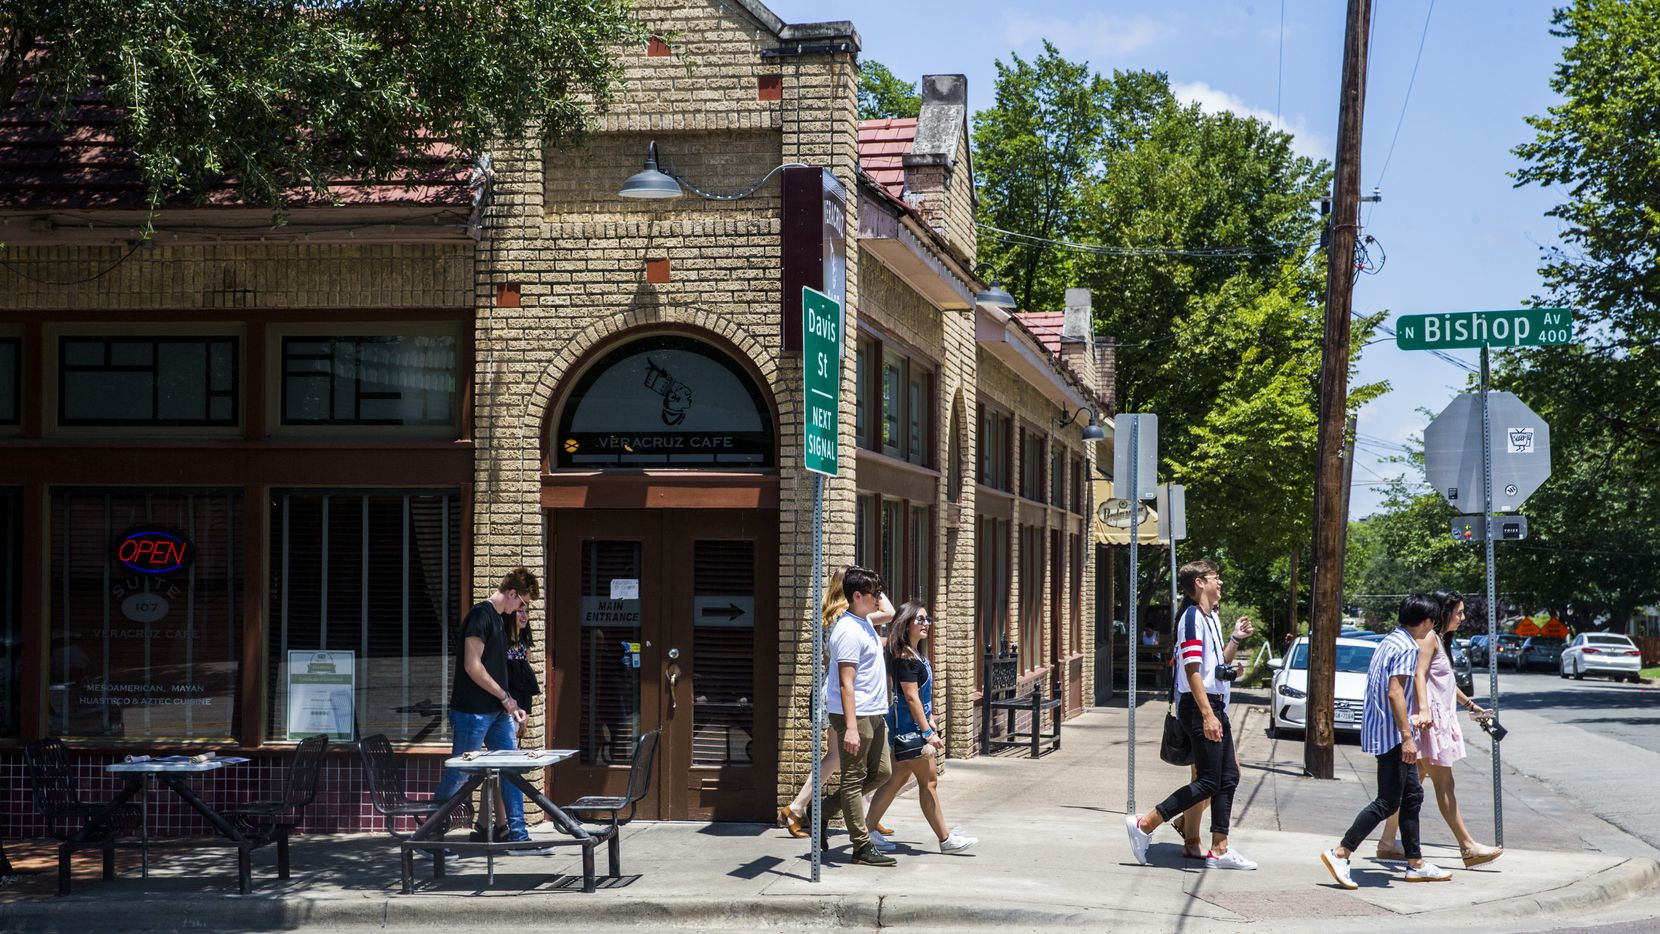 Bishop Arts District on Thursday, June 29, 2017 in Dallas